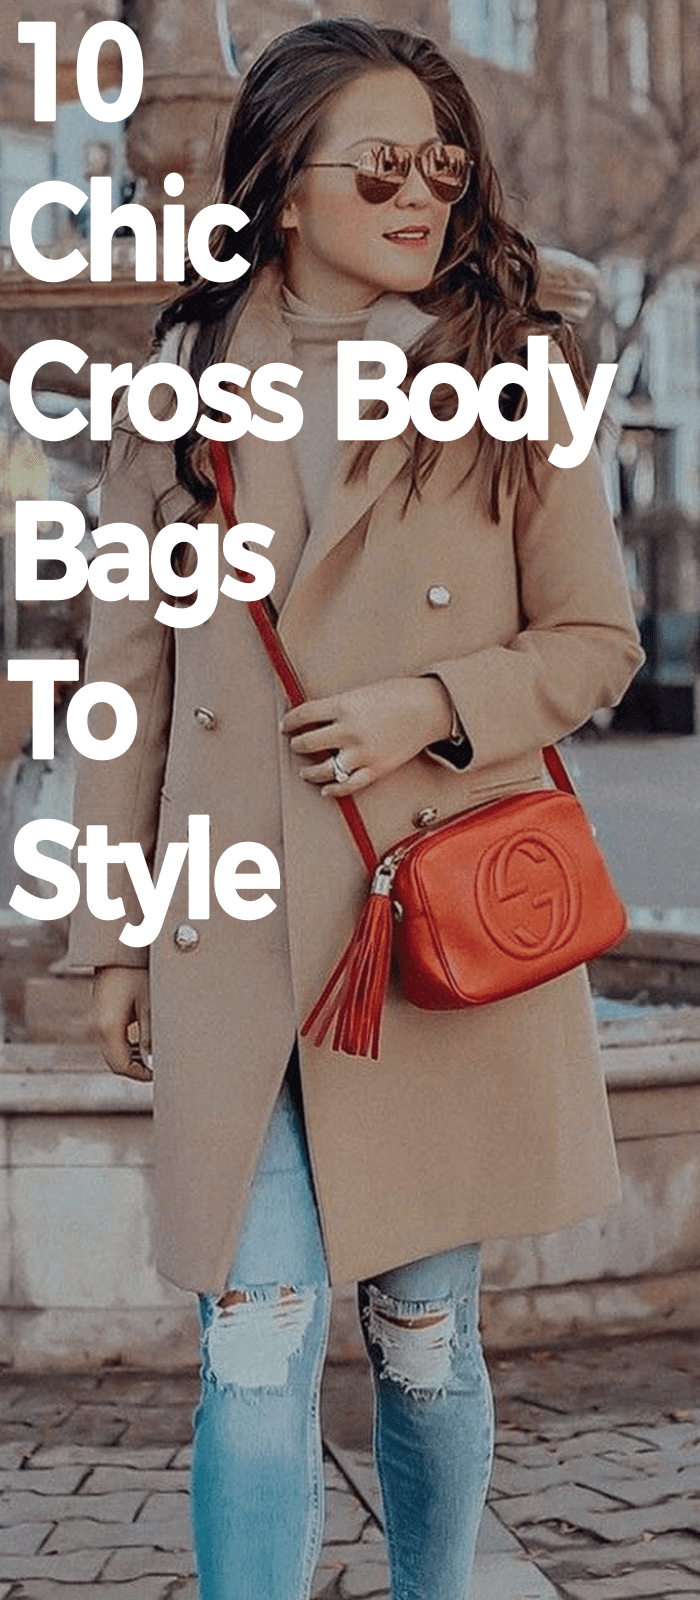 10 Chic Cross Body Bags To Style!